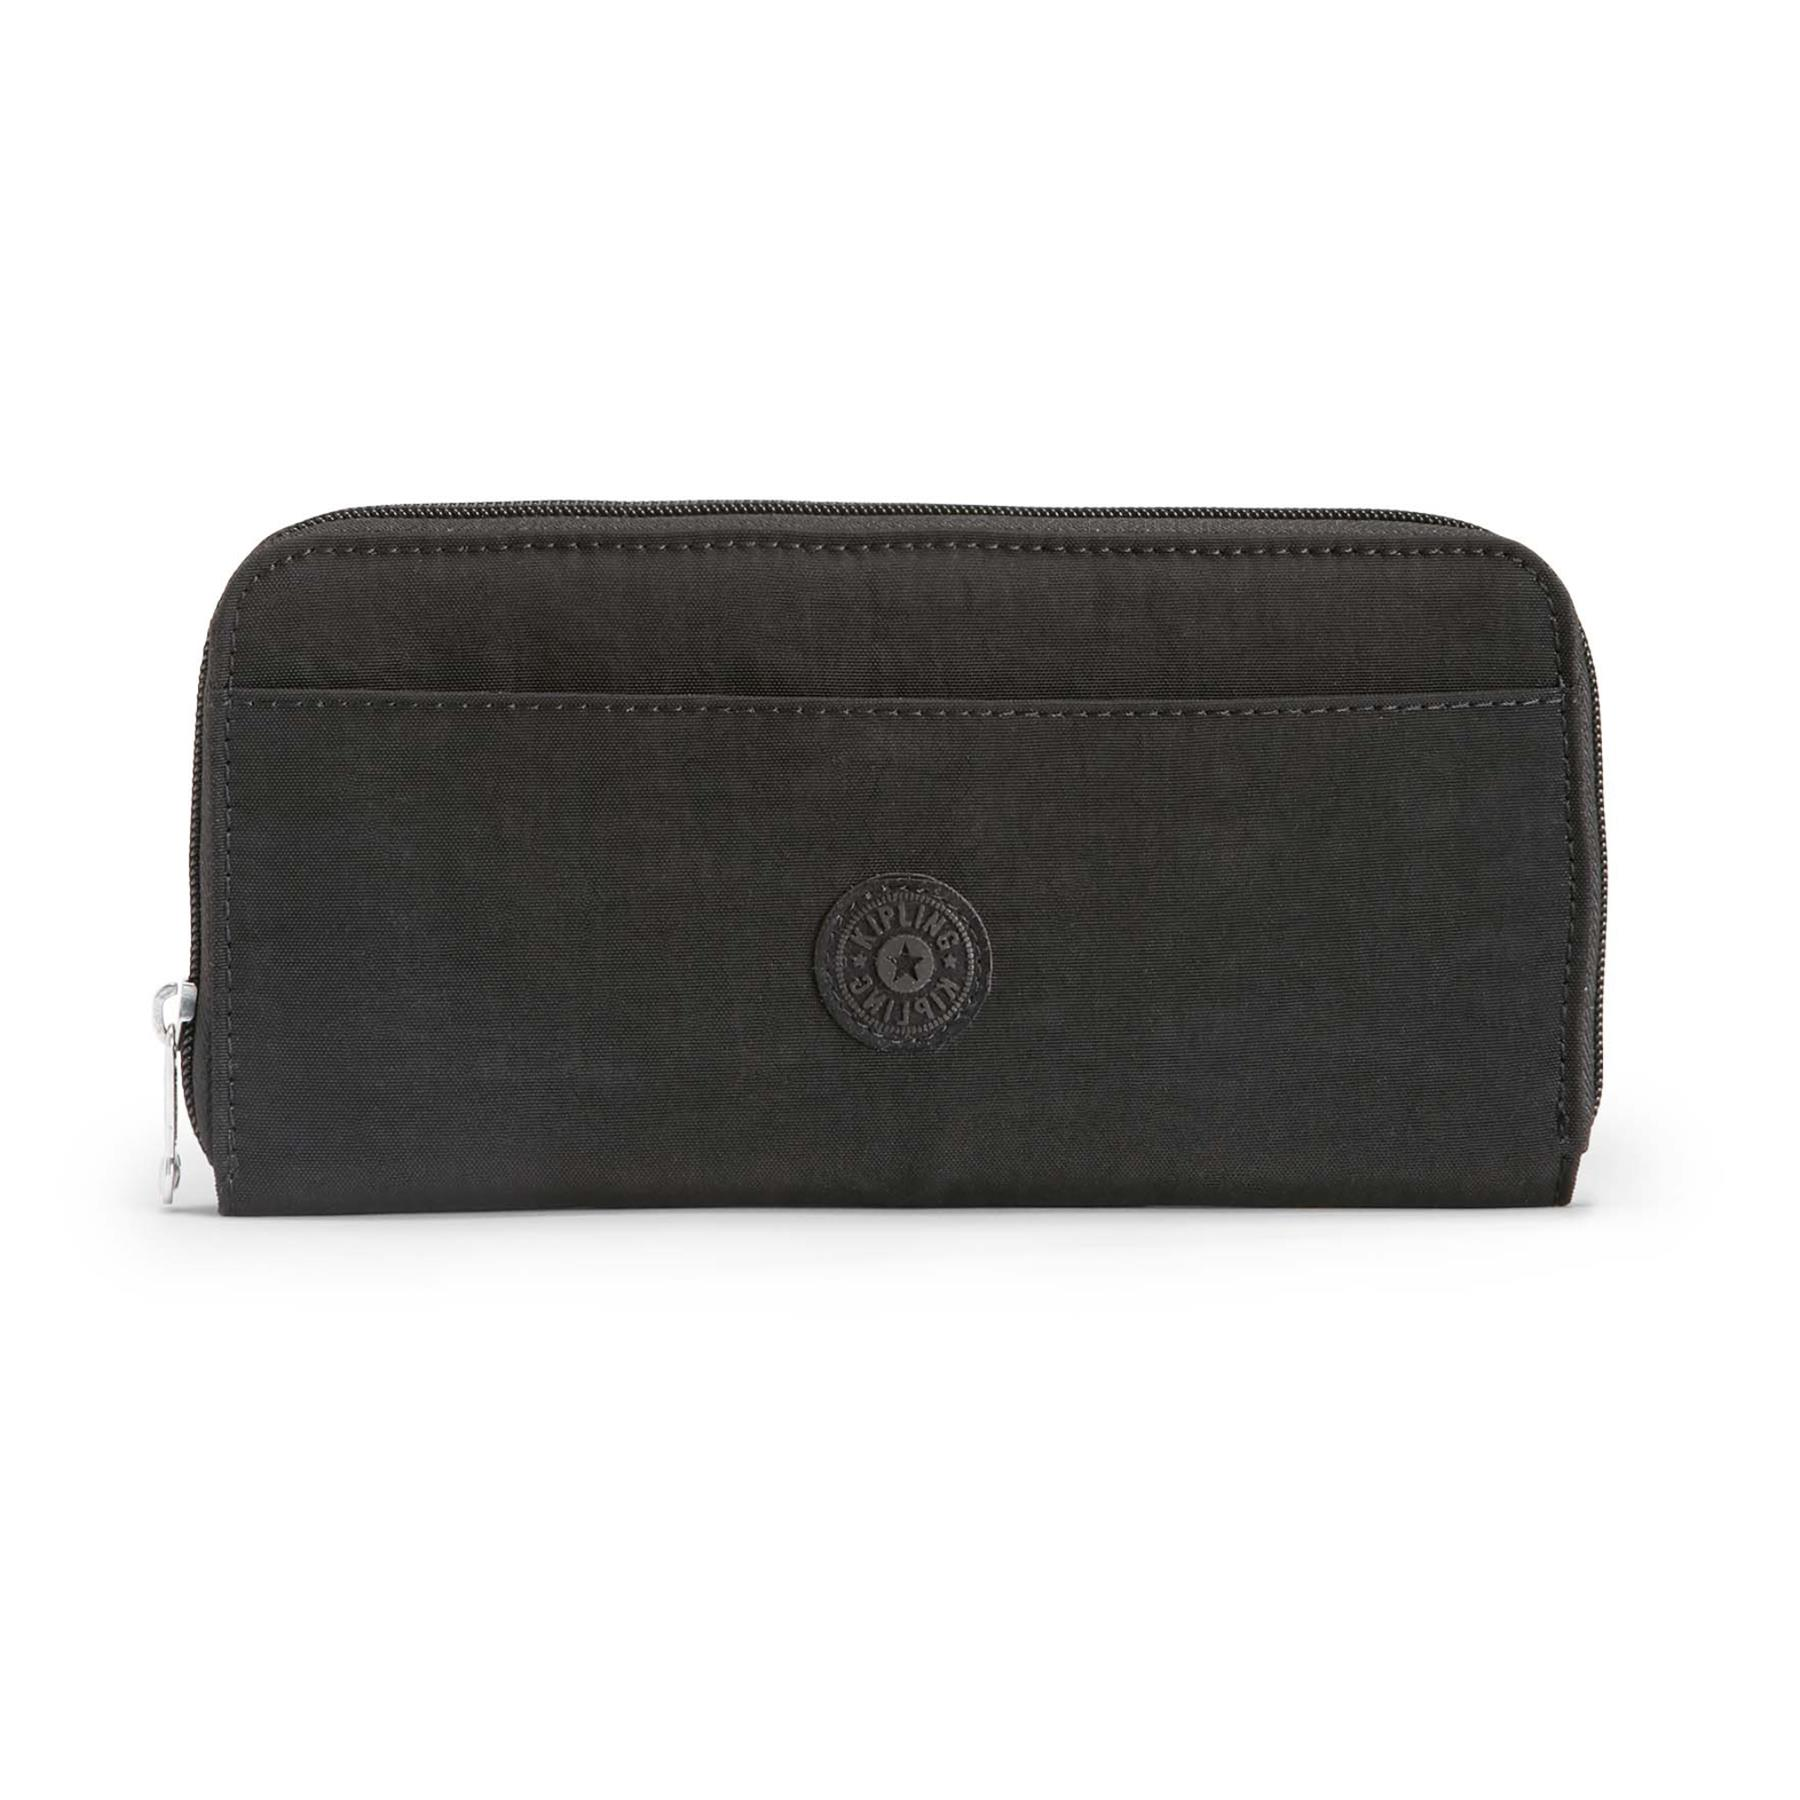 half off 98efe 90abf Details about Kipling Travel Doc / Document Passport Holder & Travel  Organiser